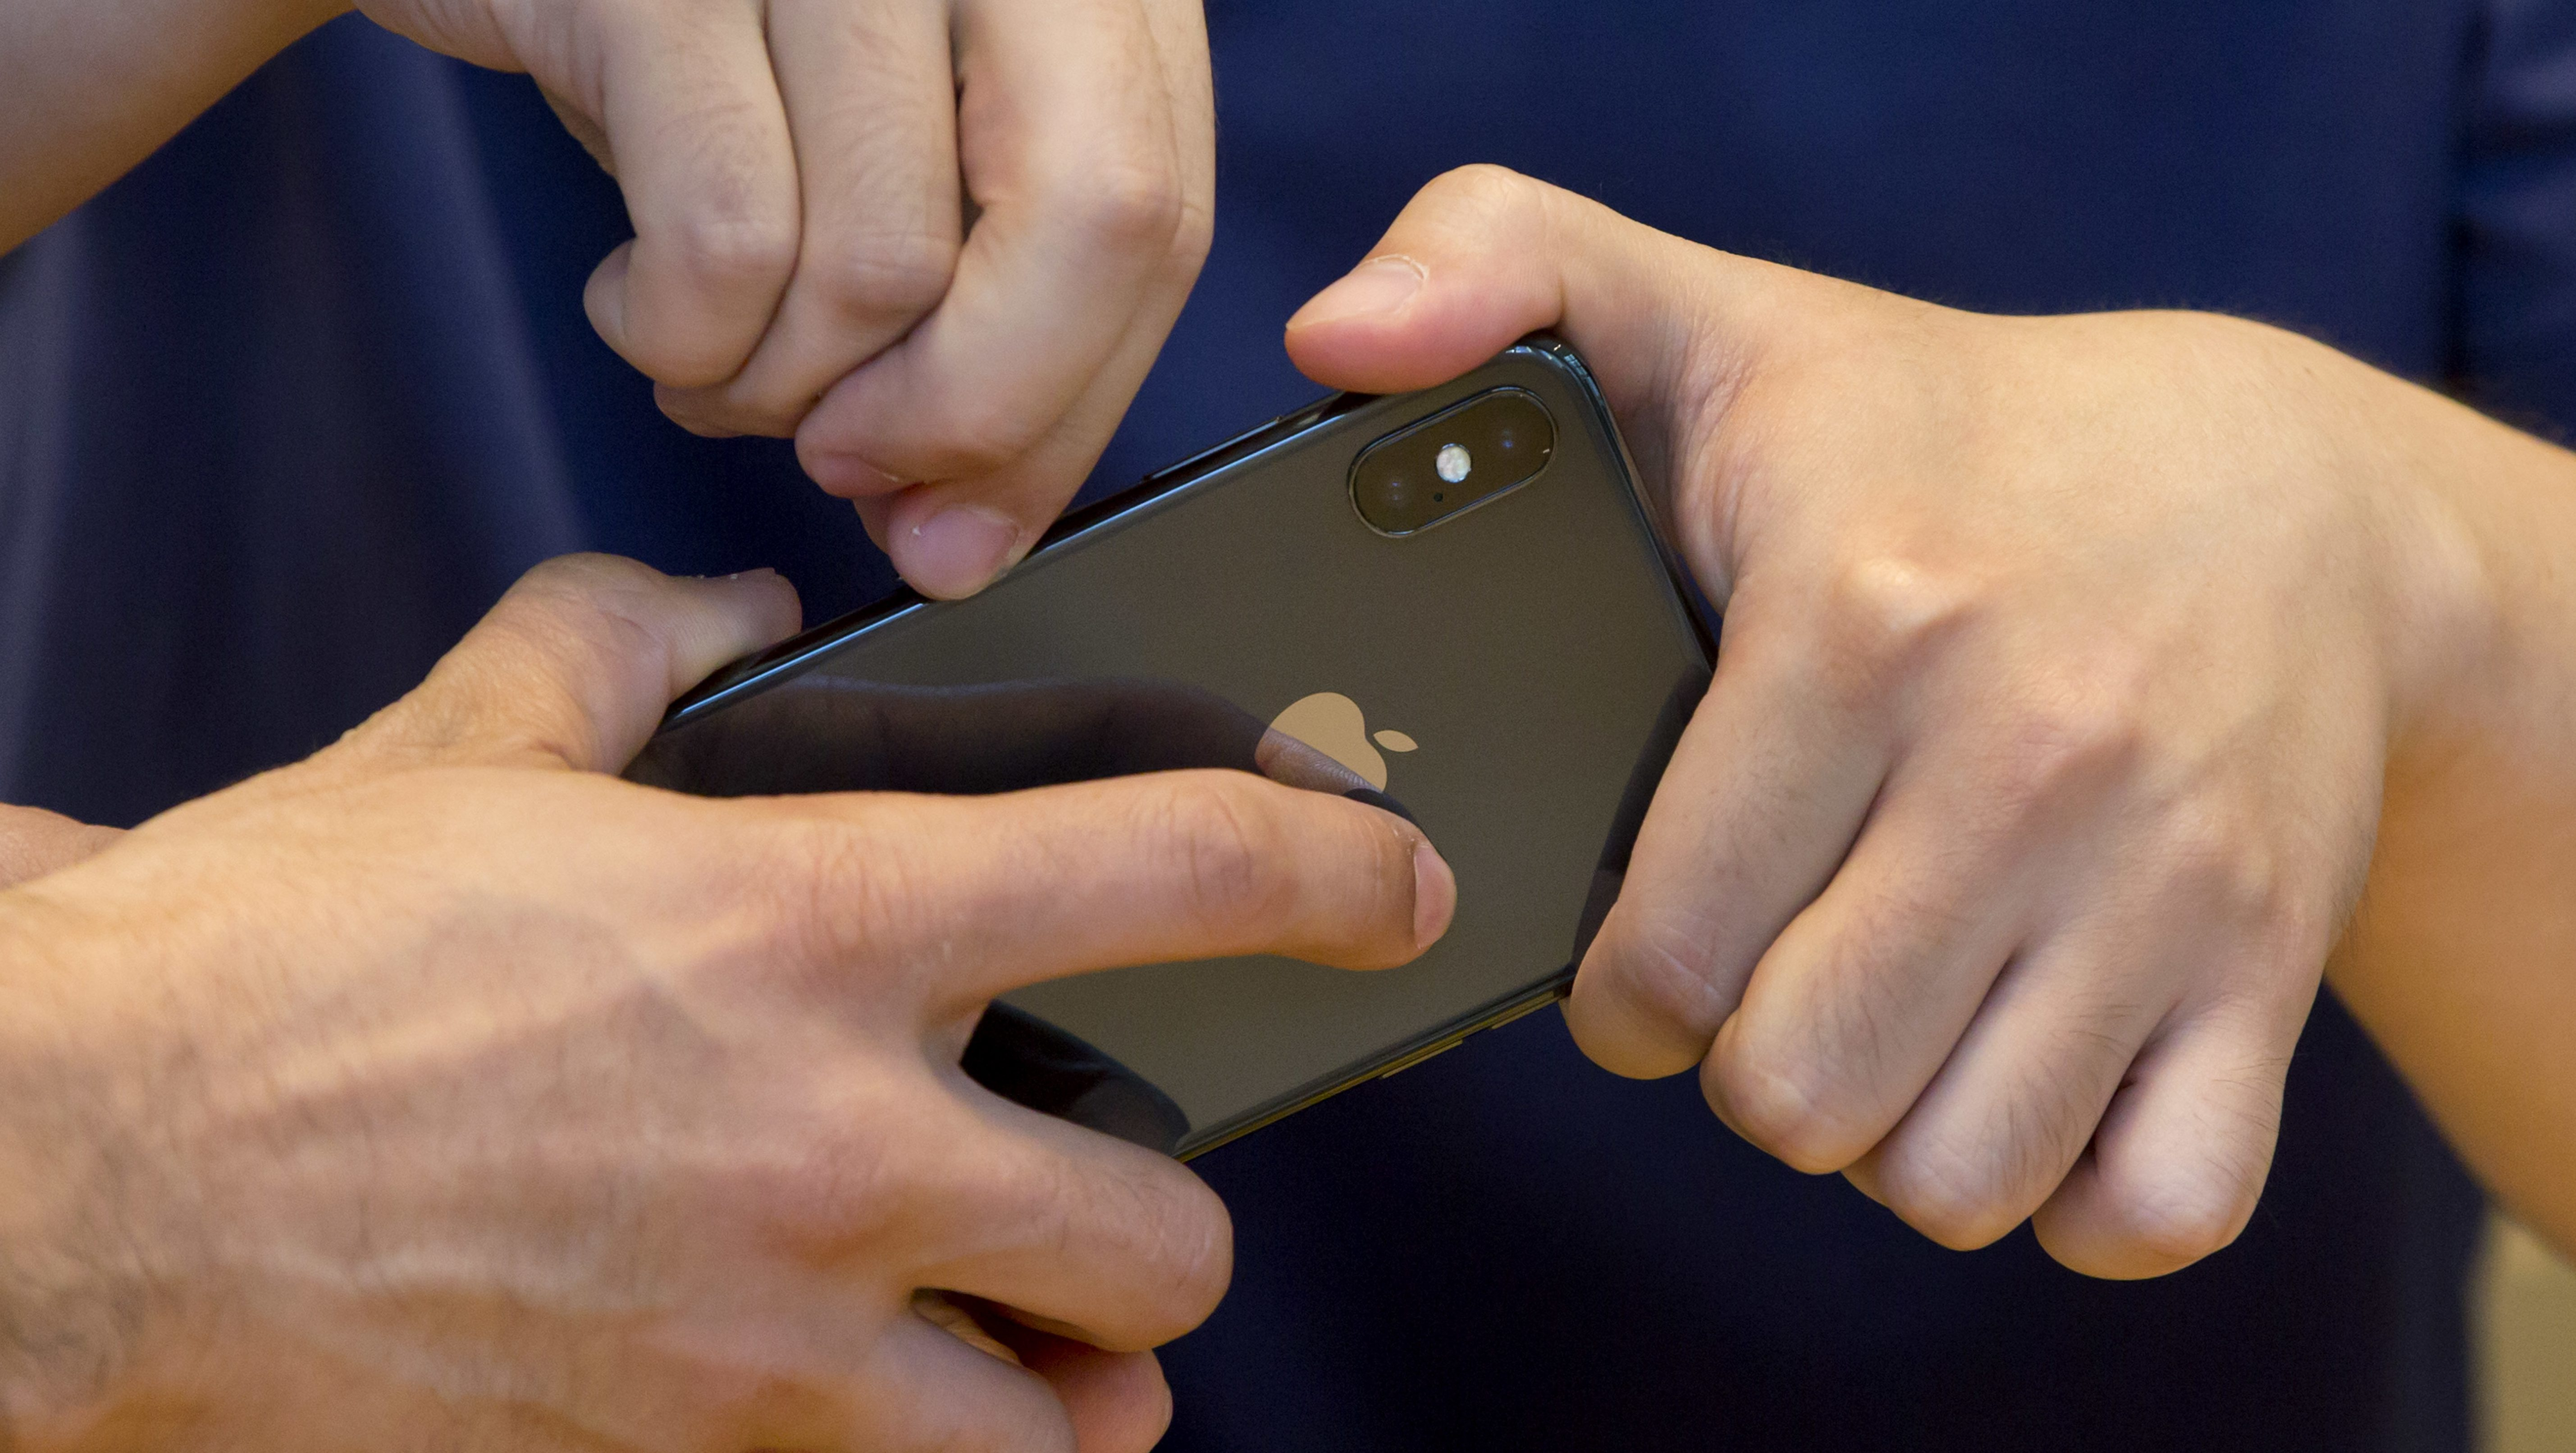 Due to cell phone radiation, California recommends texting